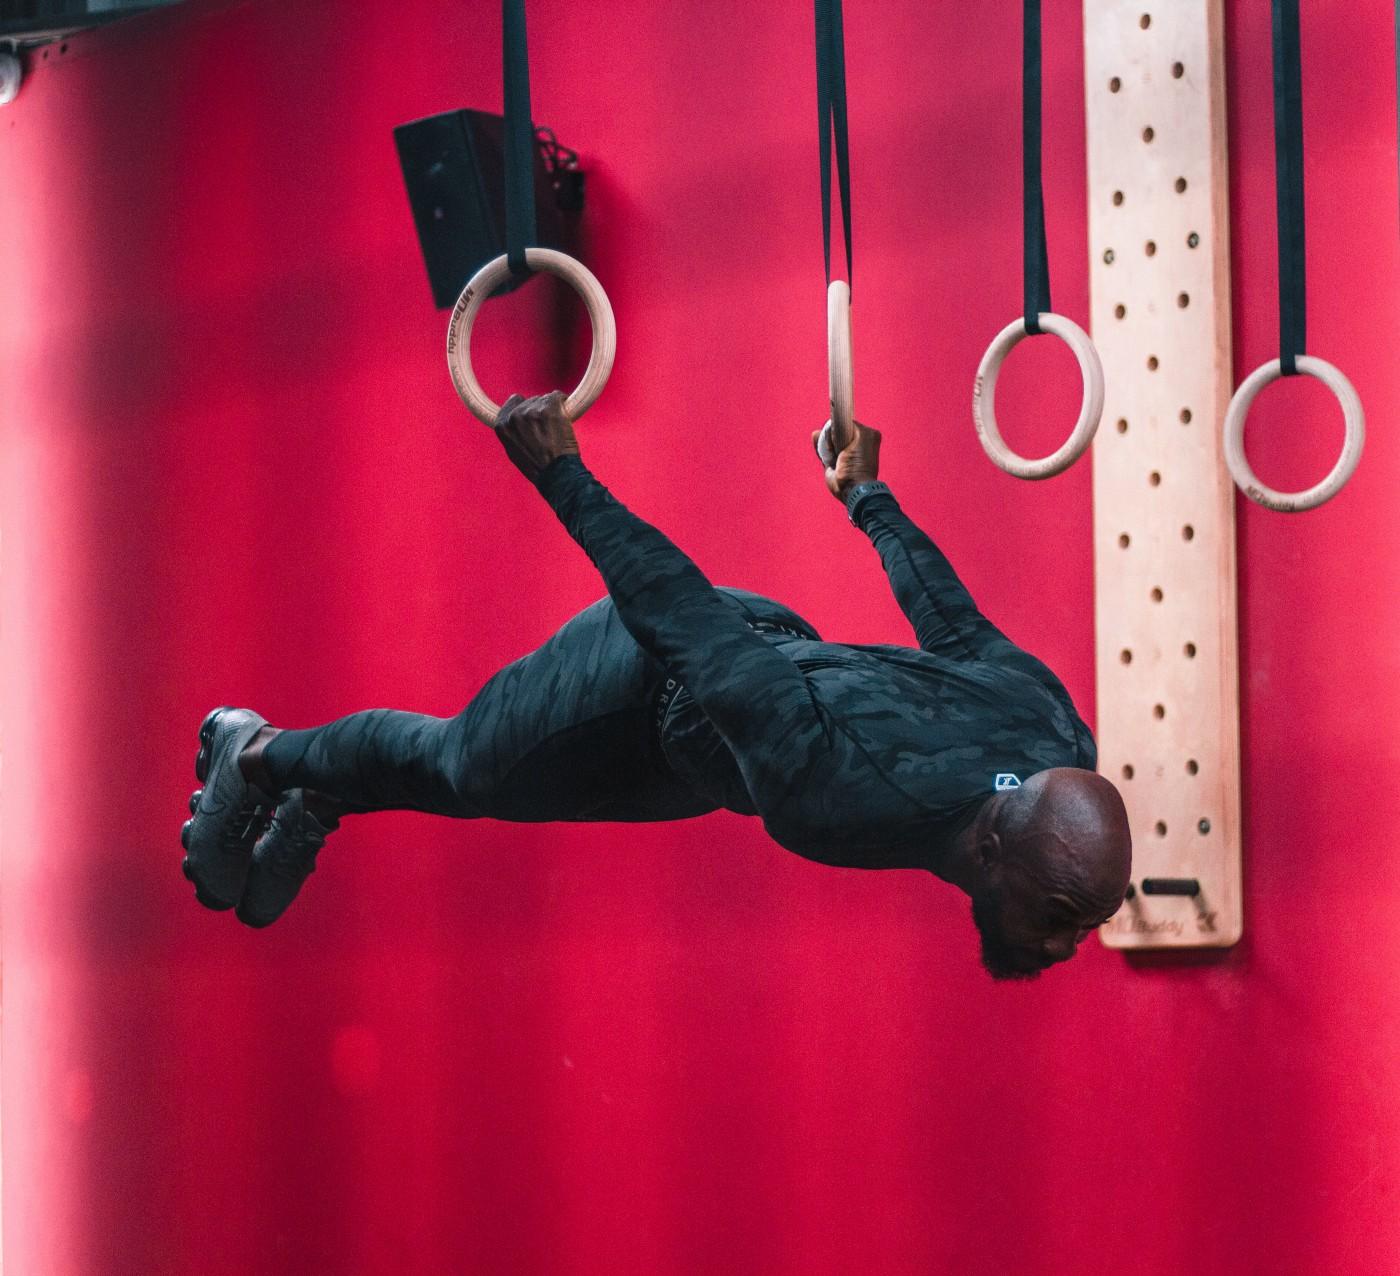 a gymnast hangs from rings in the horizontal position